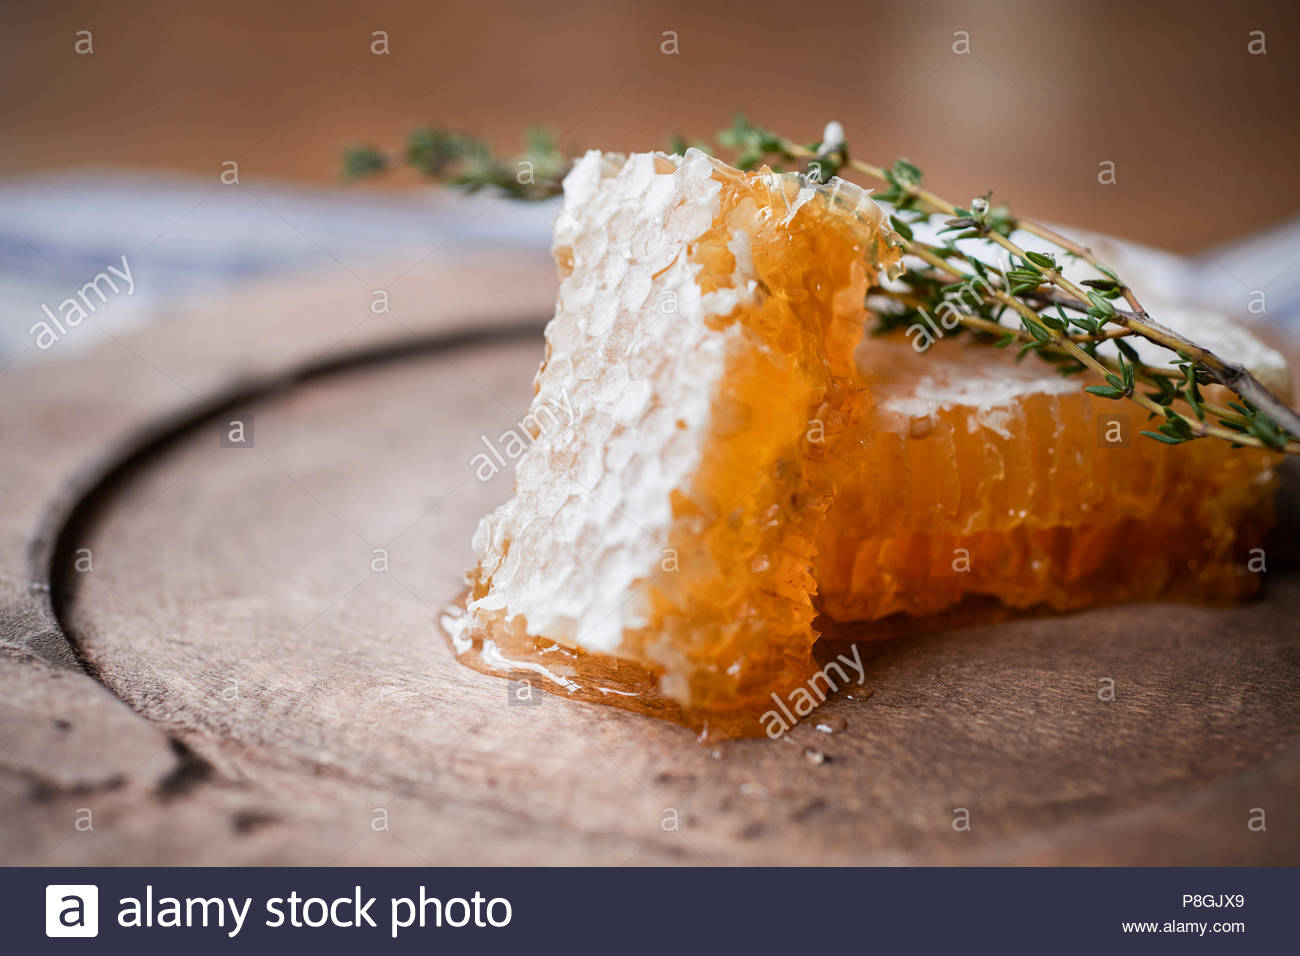 2 large pieces of honeycomb with fresh thyme on a rustic wood plate. - Stock Image